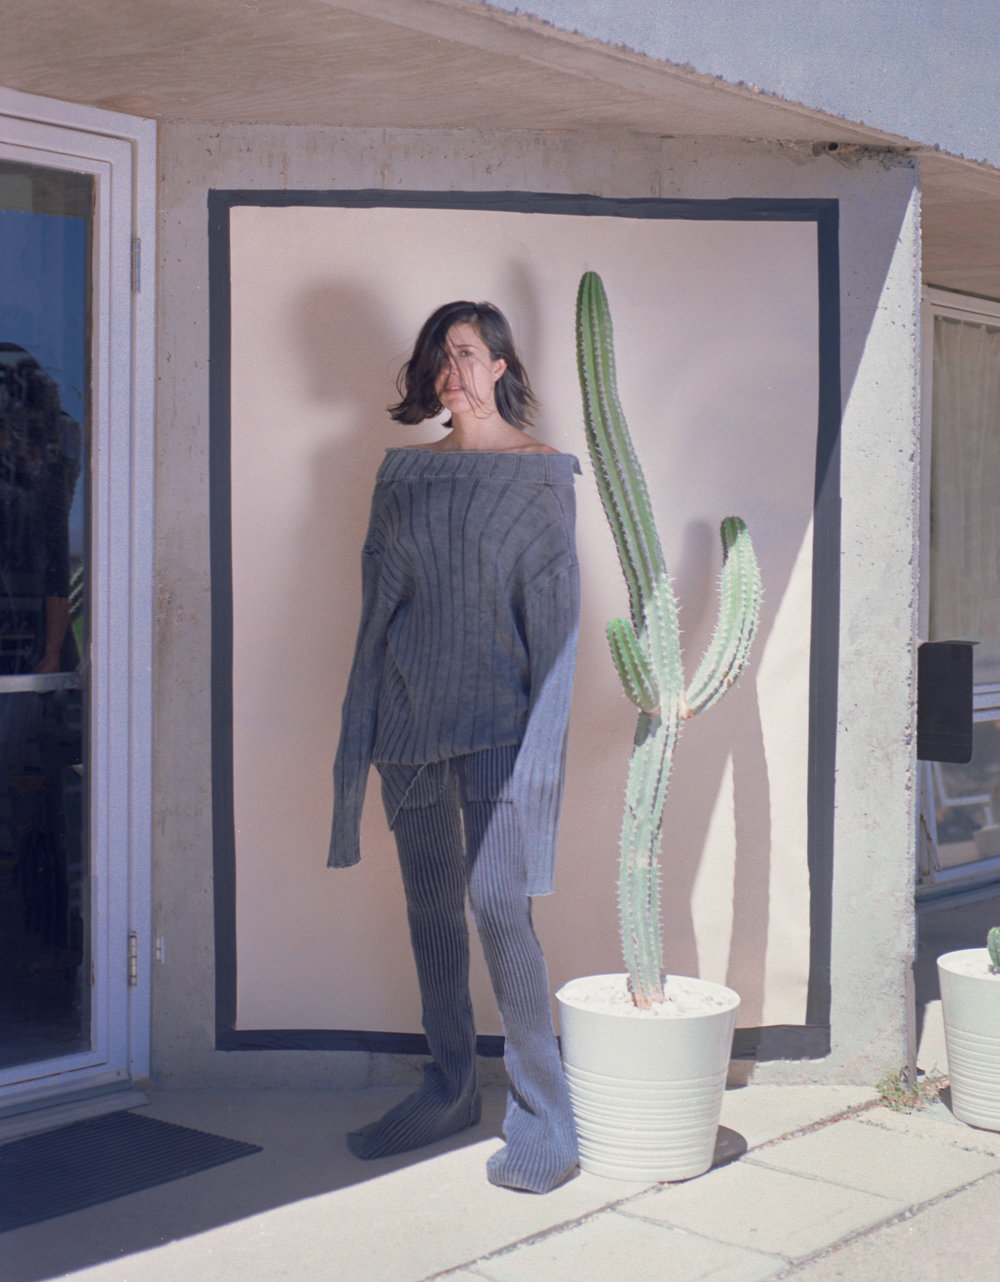 Half Waif photographed by Tonje Thilesen